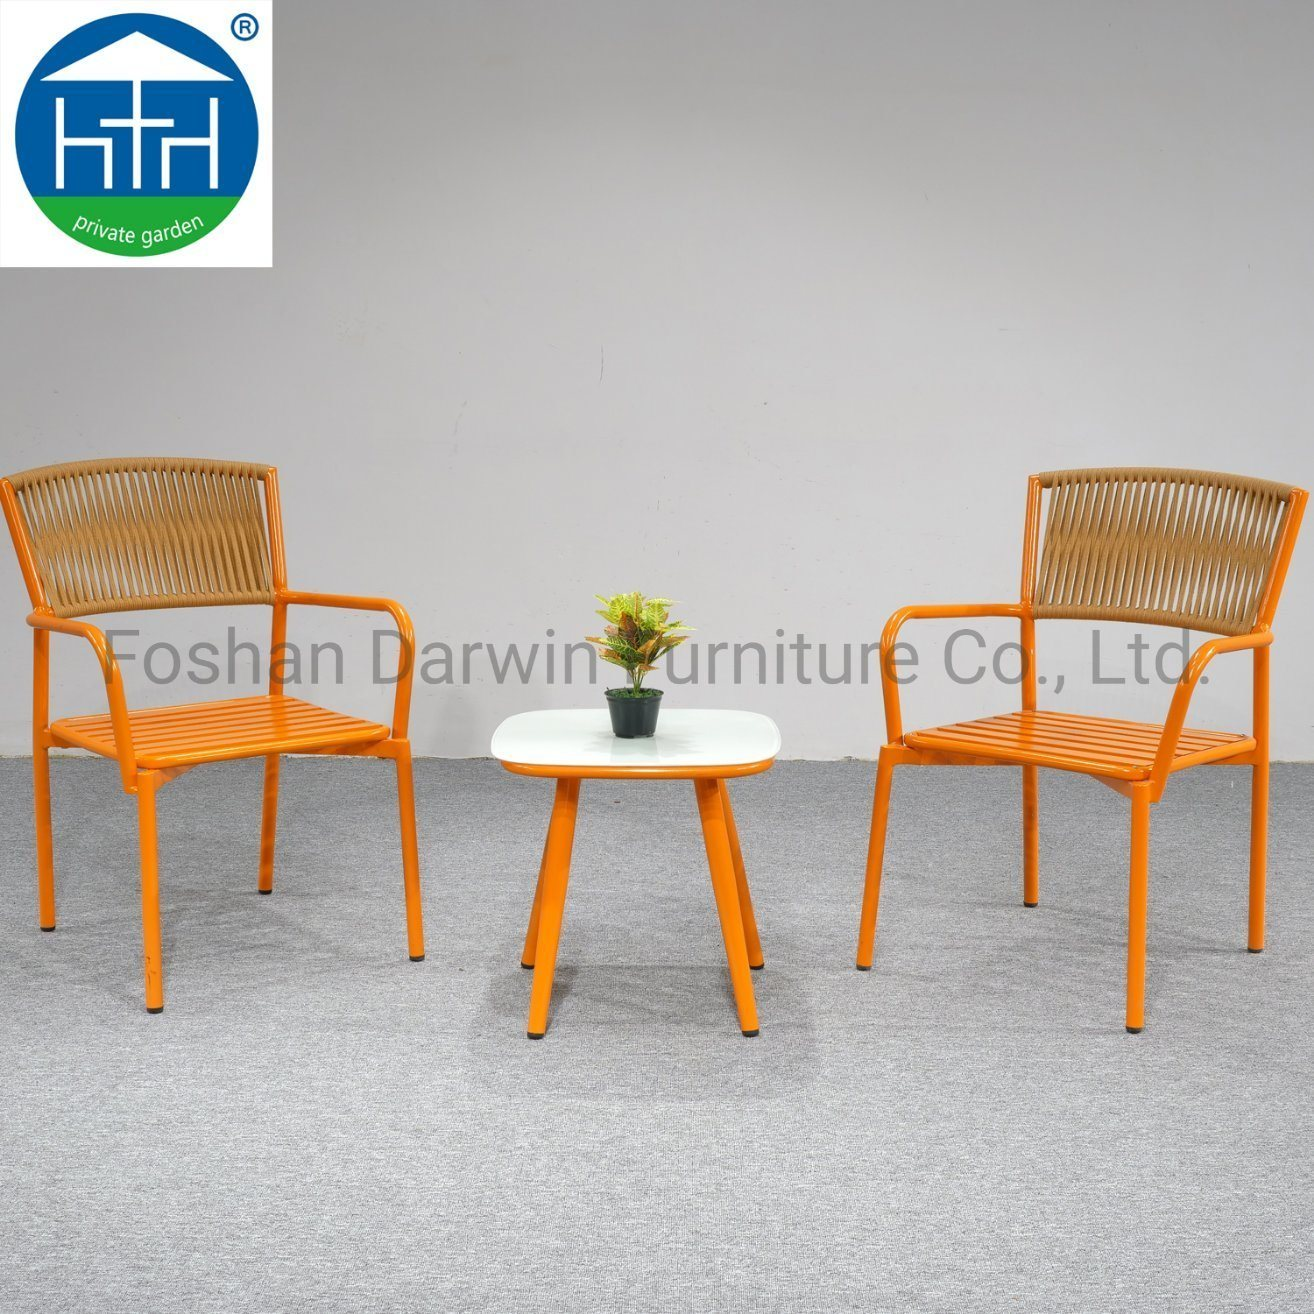 chairs outdoor patio furniture